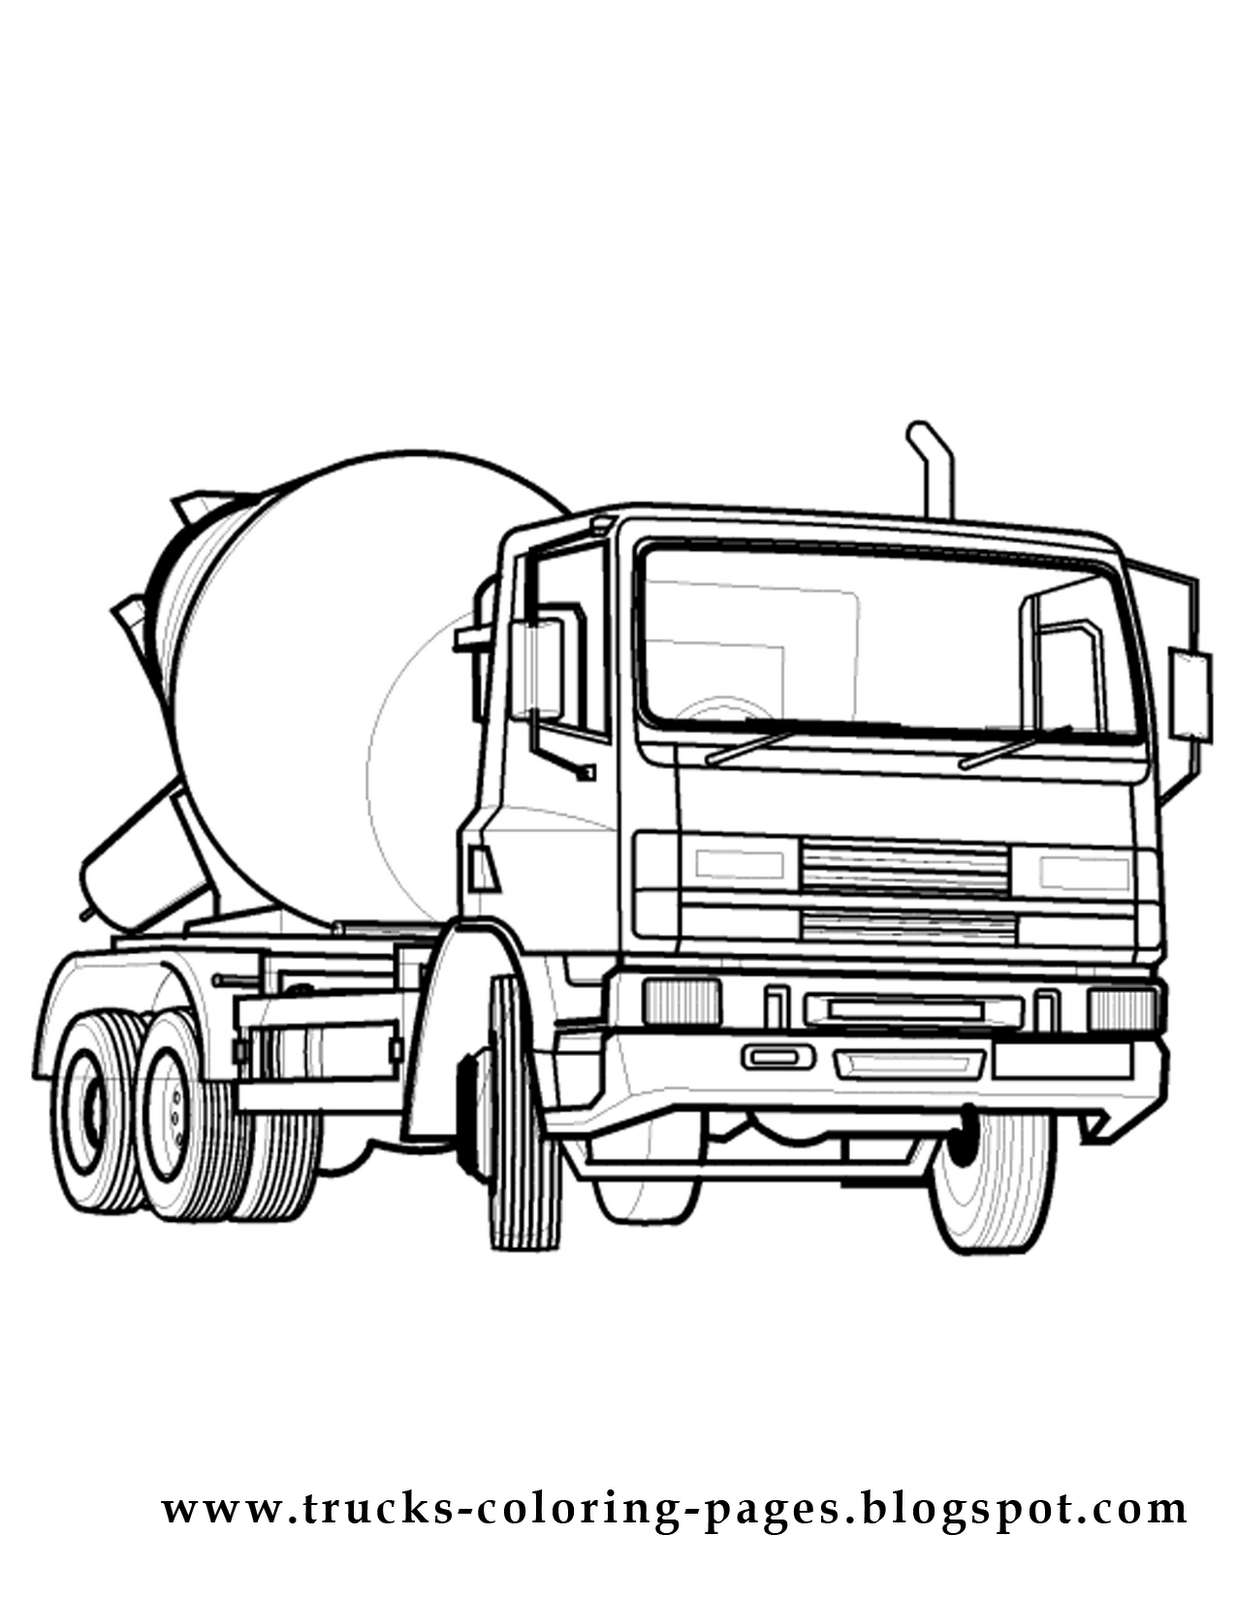 Printable Coloring Pages Of Cars And Trucks (9 Image ...